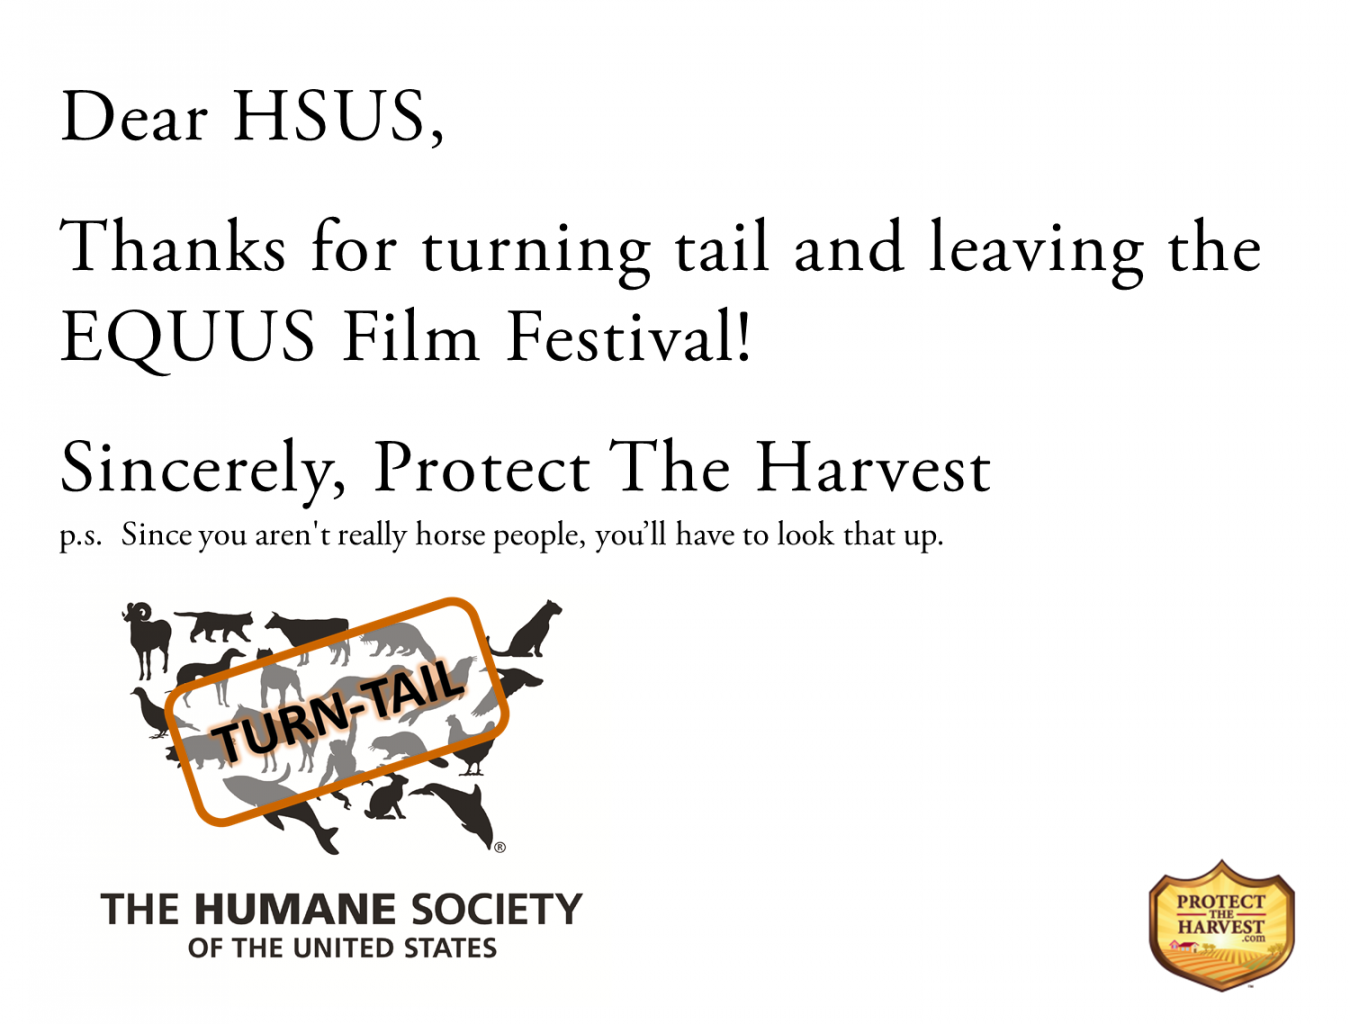 Thank You HSUS for Turning Tail